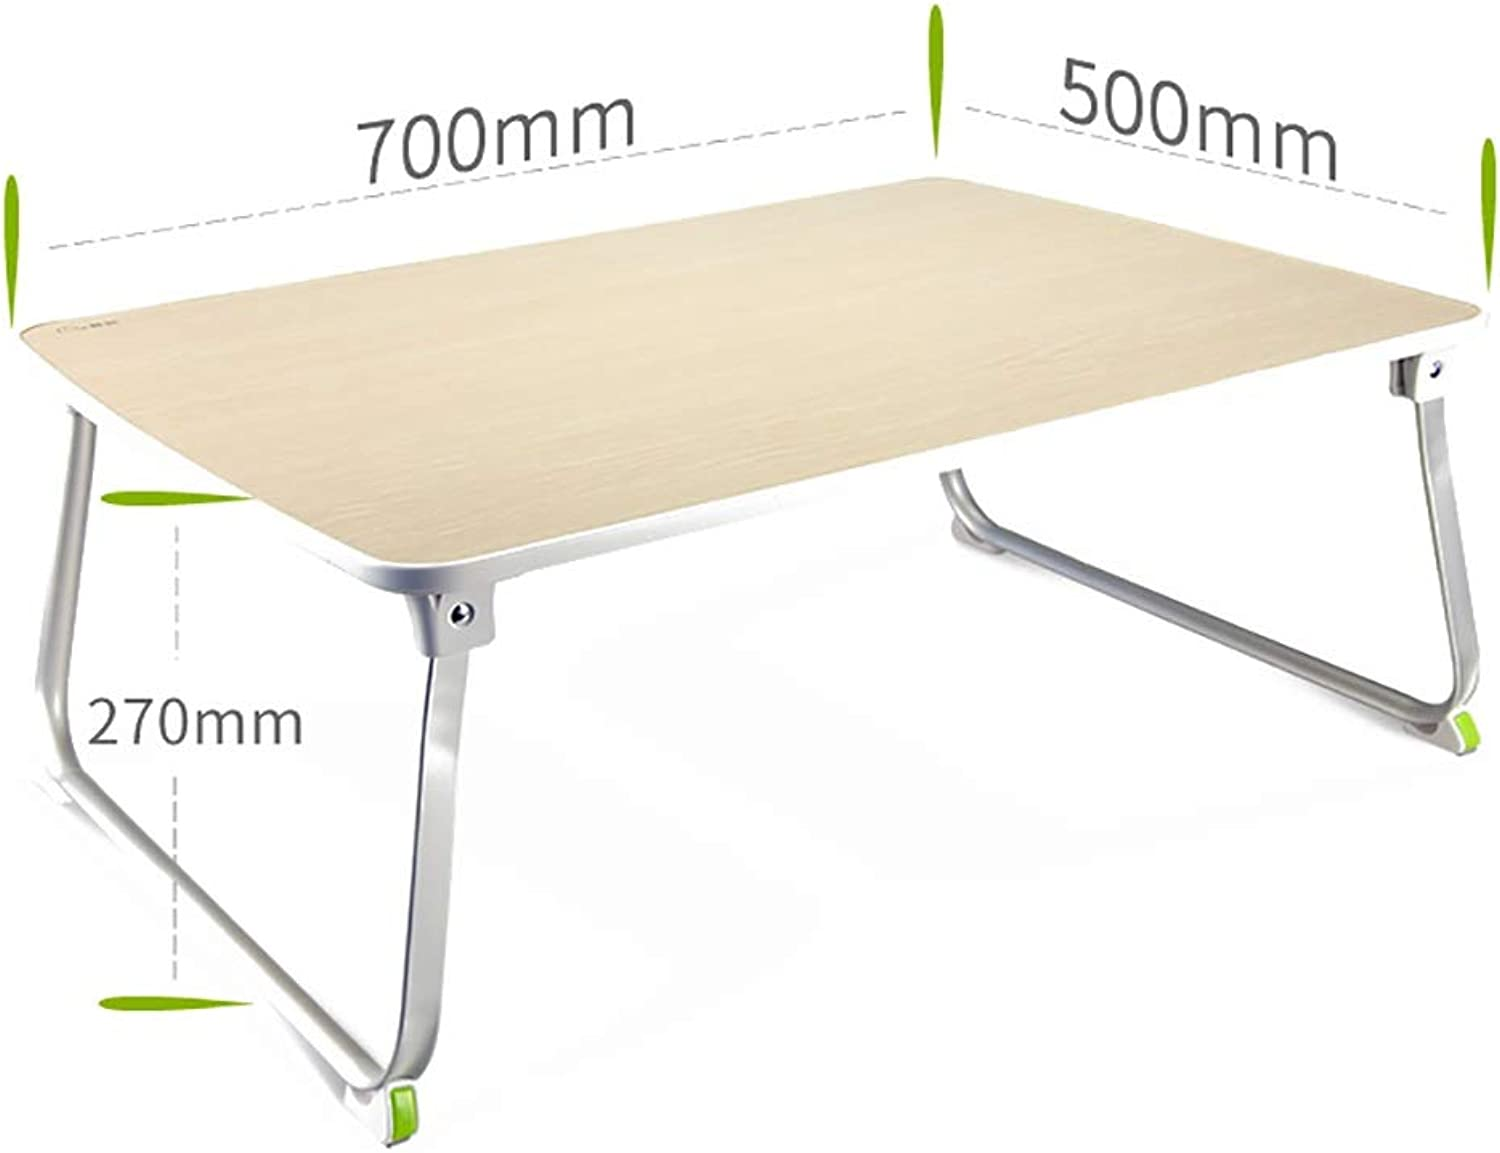 NSS Laptop Table, E1 Grade Environmentally Friendly Material is Healthy and Non-Toxic, Five Sizes are Available for You to Choose from. Portable Desk (Size   D)